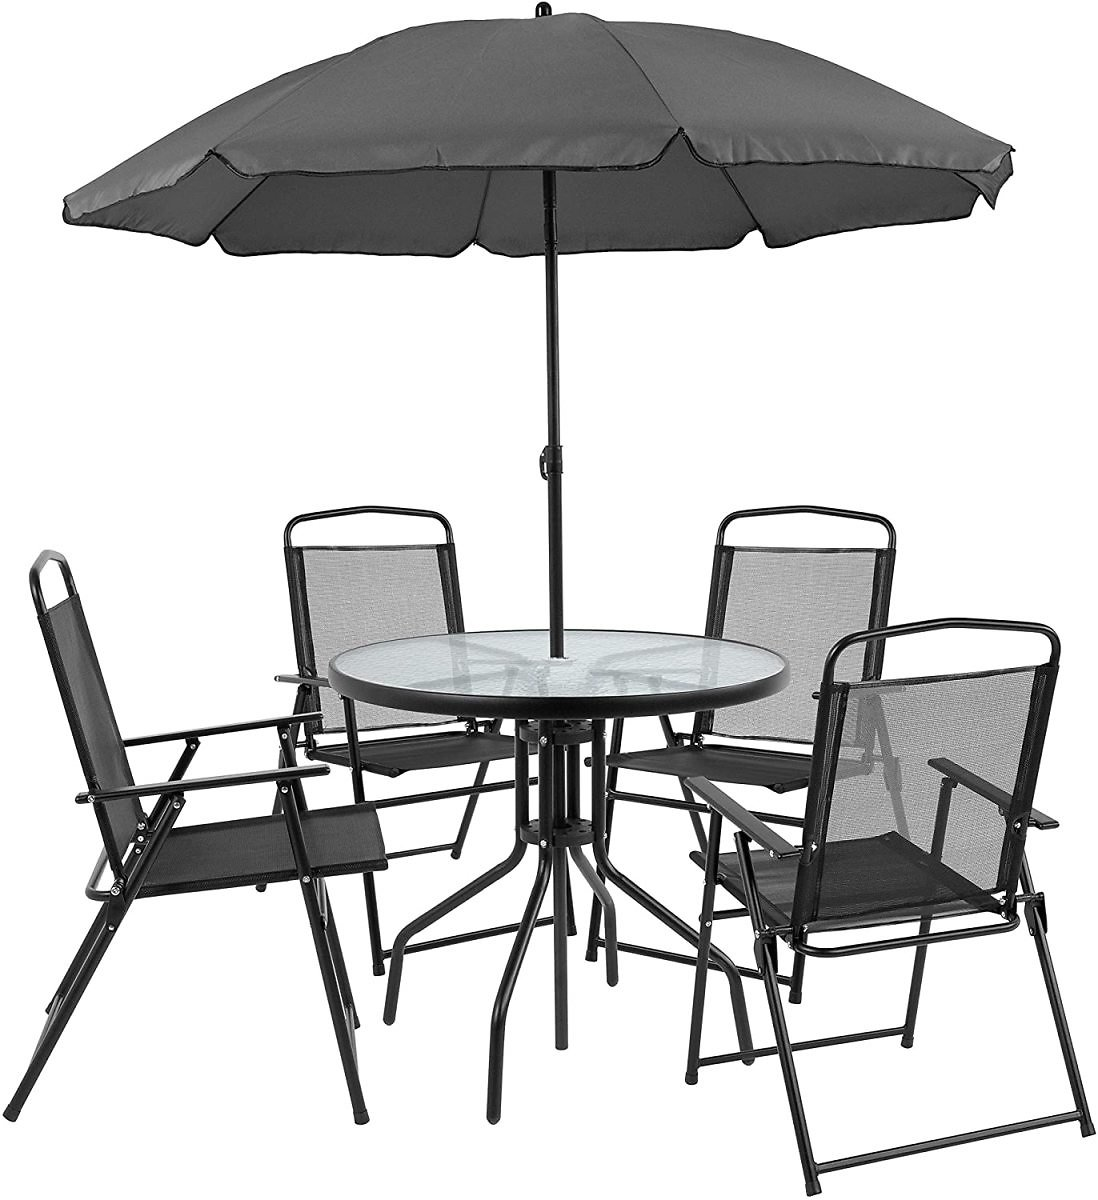 60% Discount - Flash Furniture Nantucket 6 Piece Black Patio Garden Set with Table, Umbrella and 4 Folding Chairs